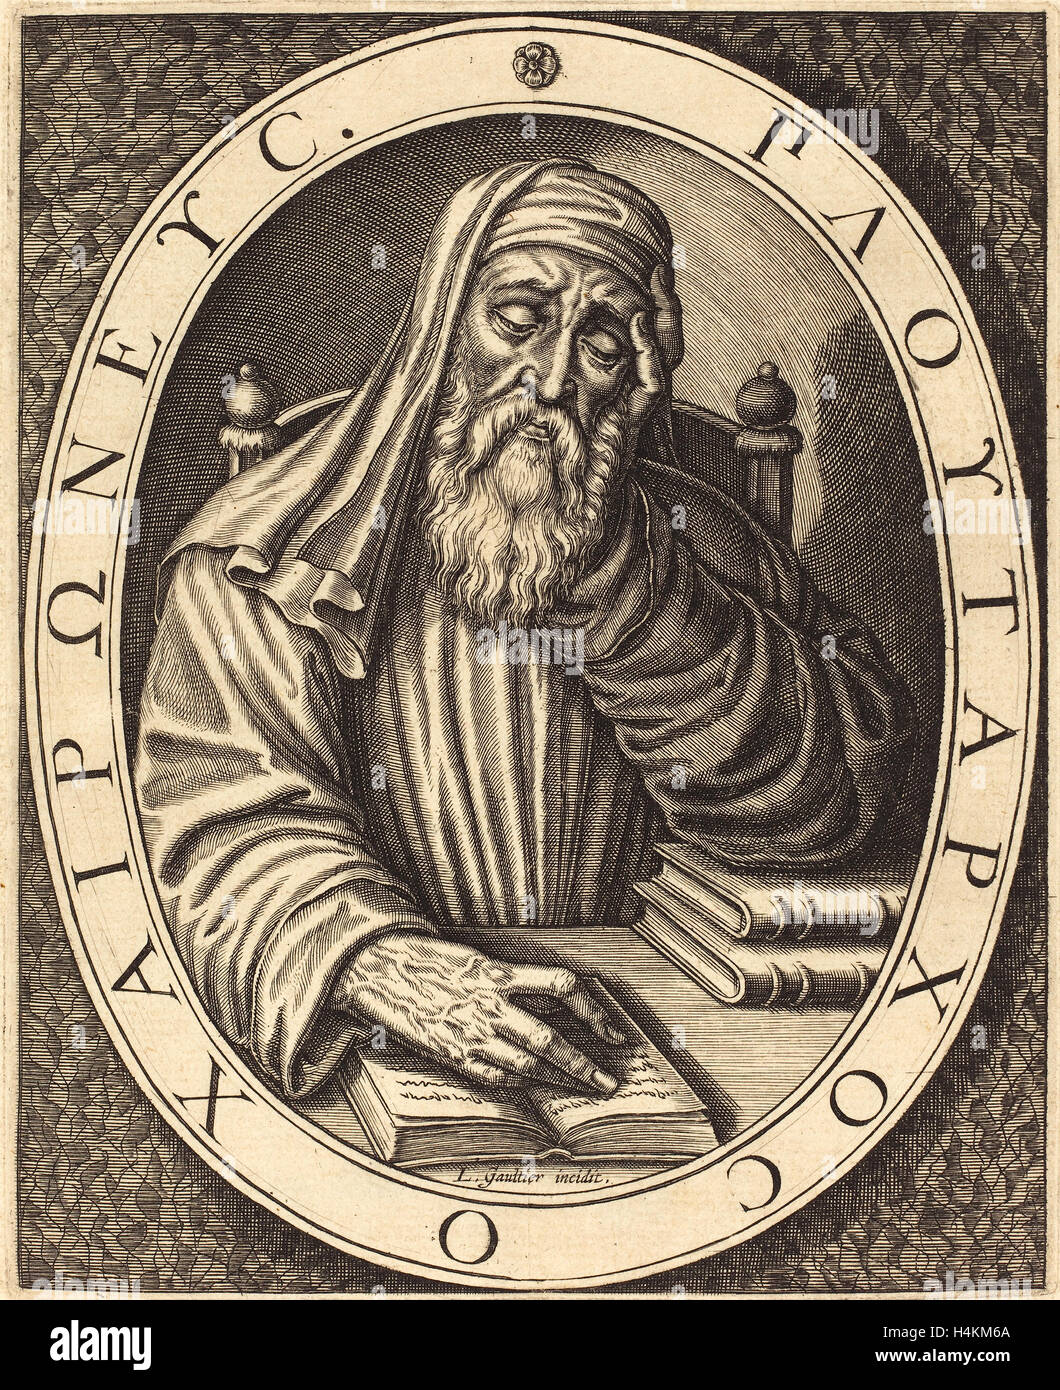 Léonard Gaultier (French, 1561 - 1641), Plutarch, engraving on laid paper Stock Photo